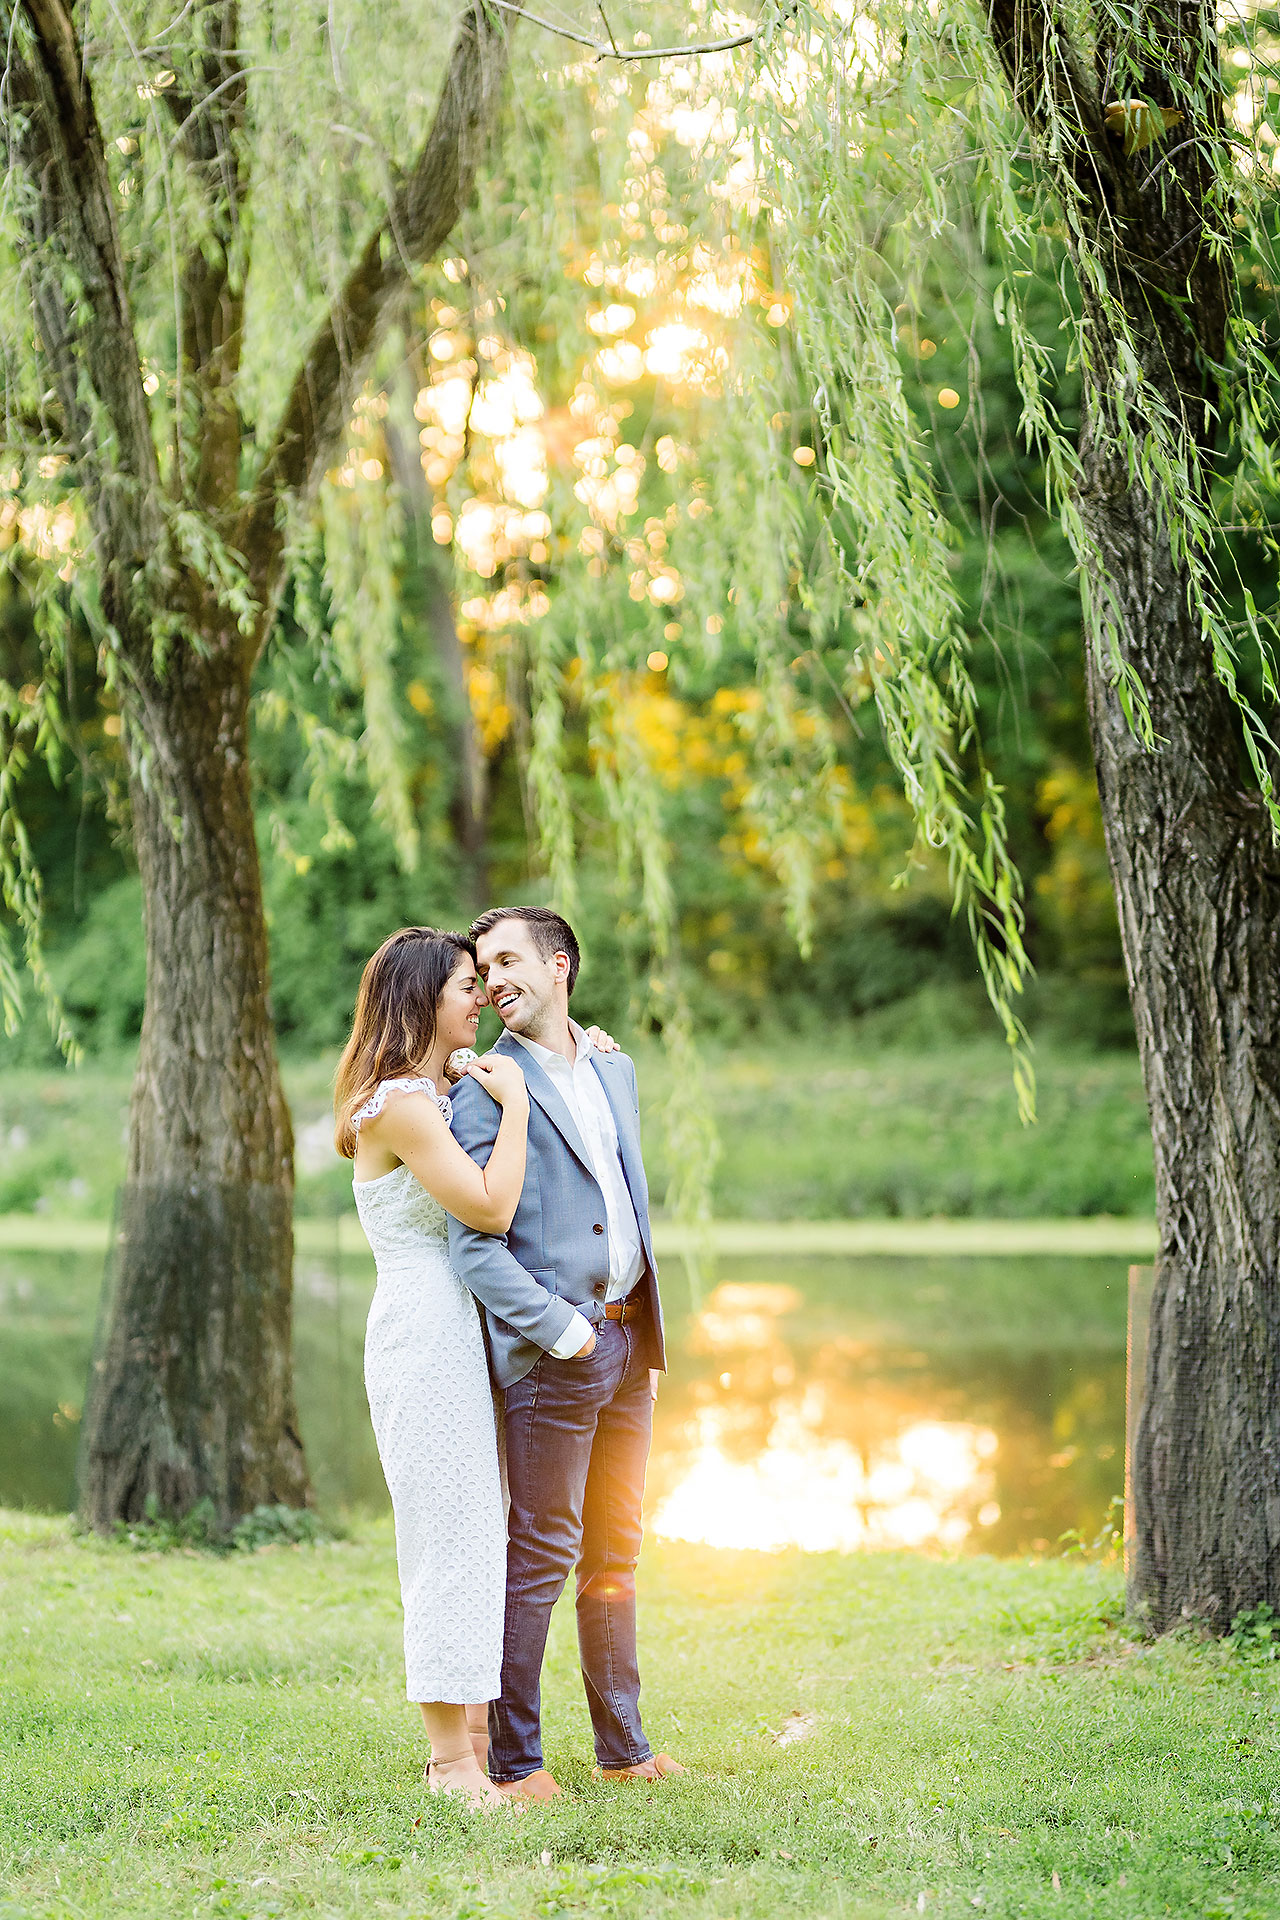 Kate Sawyer Holcomb Gardens Engagement Session 069